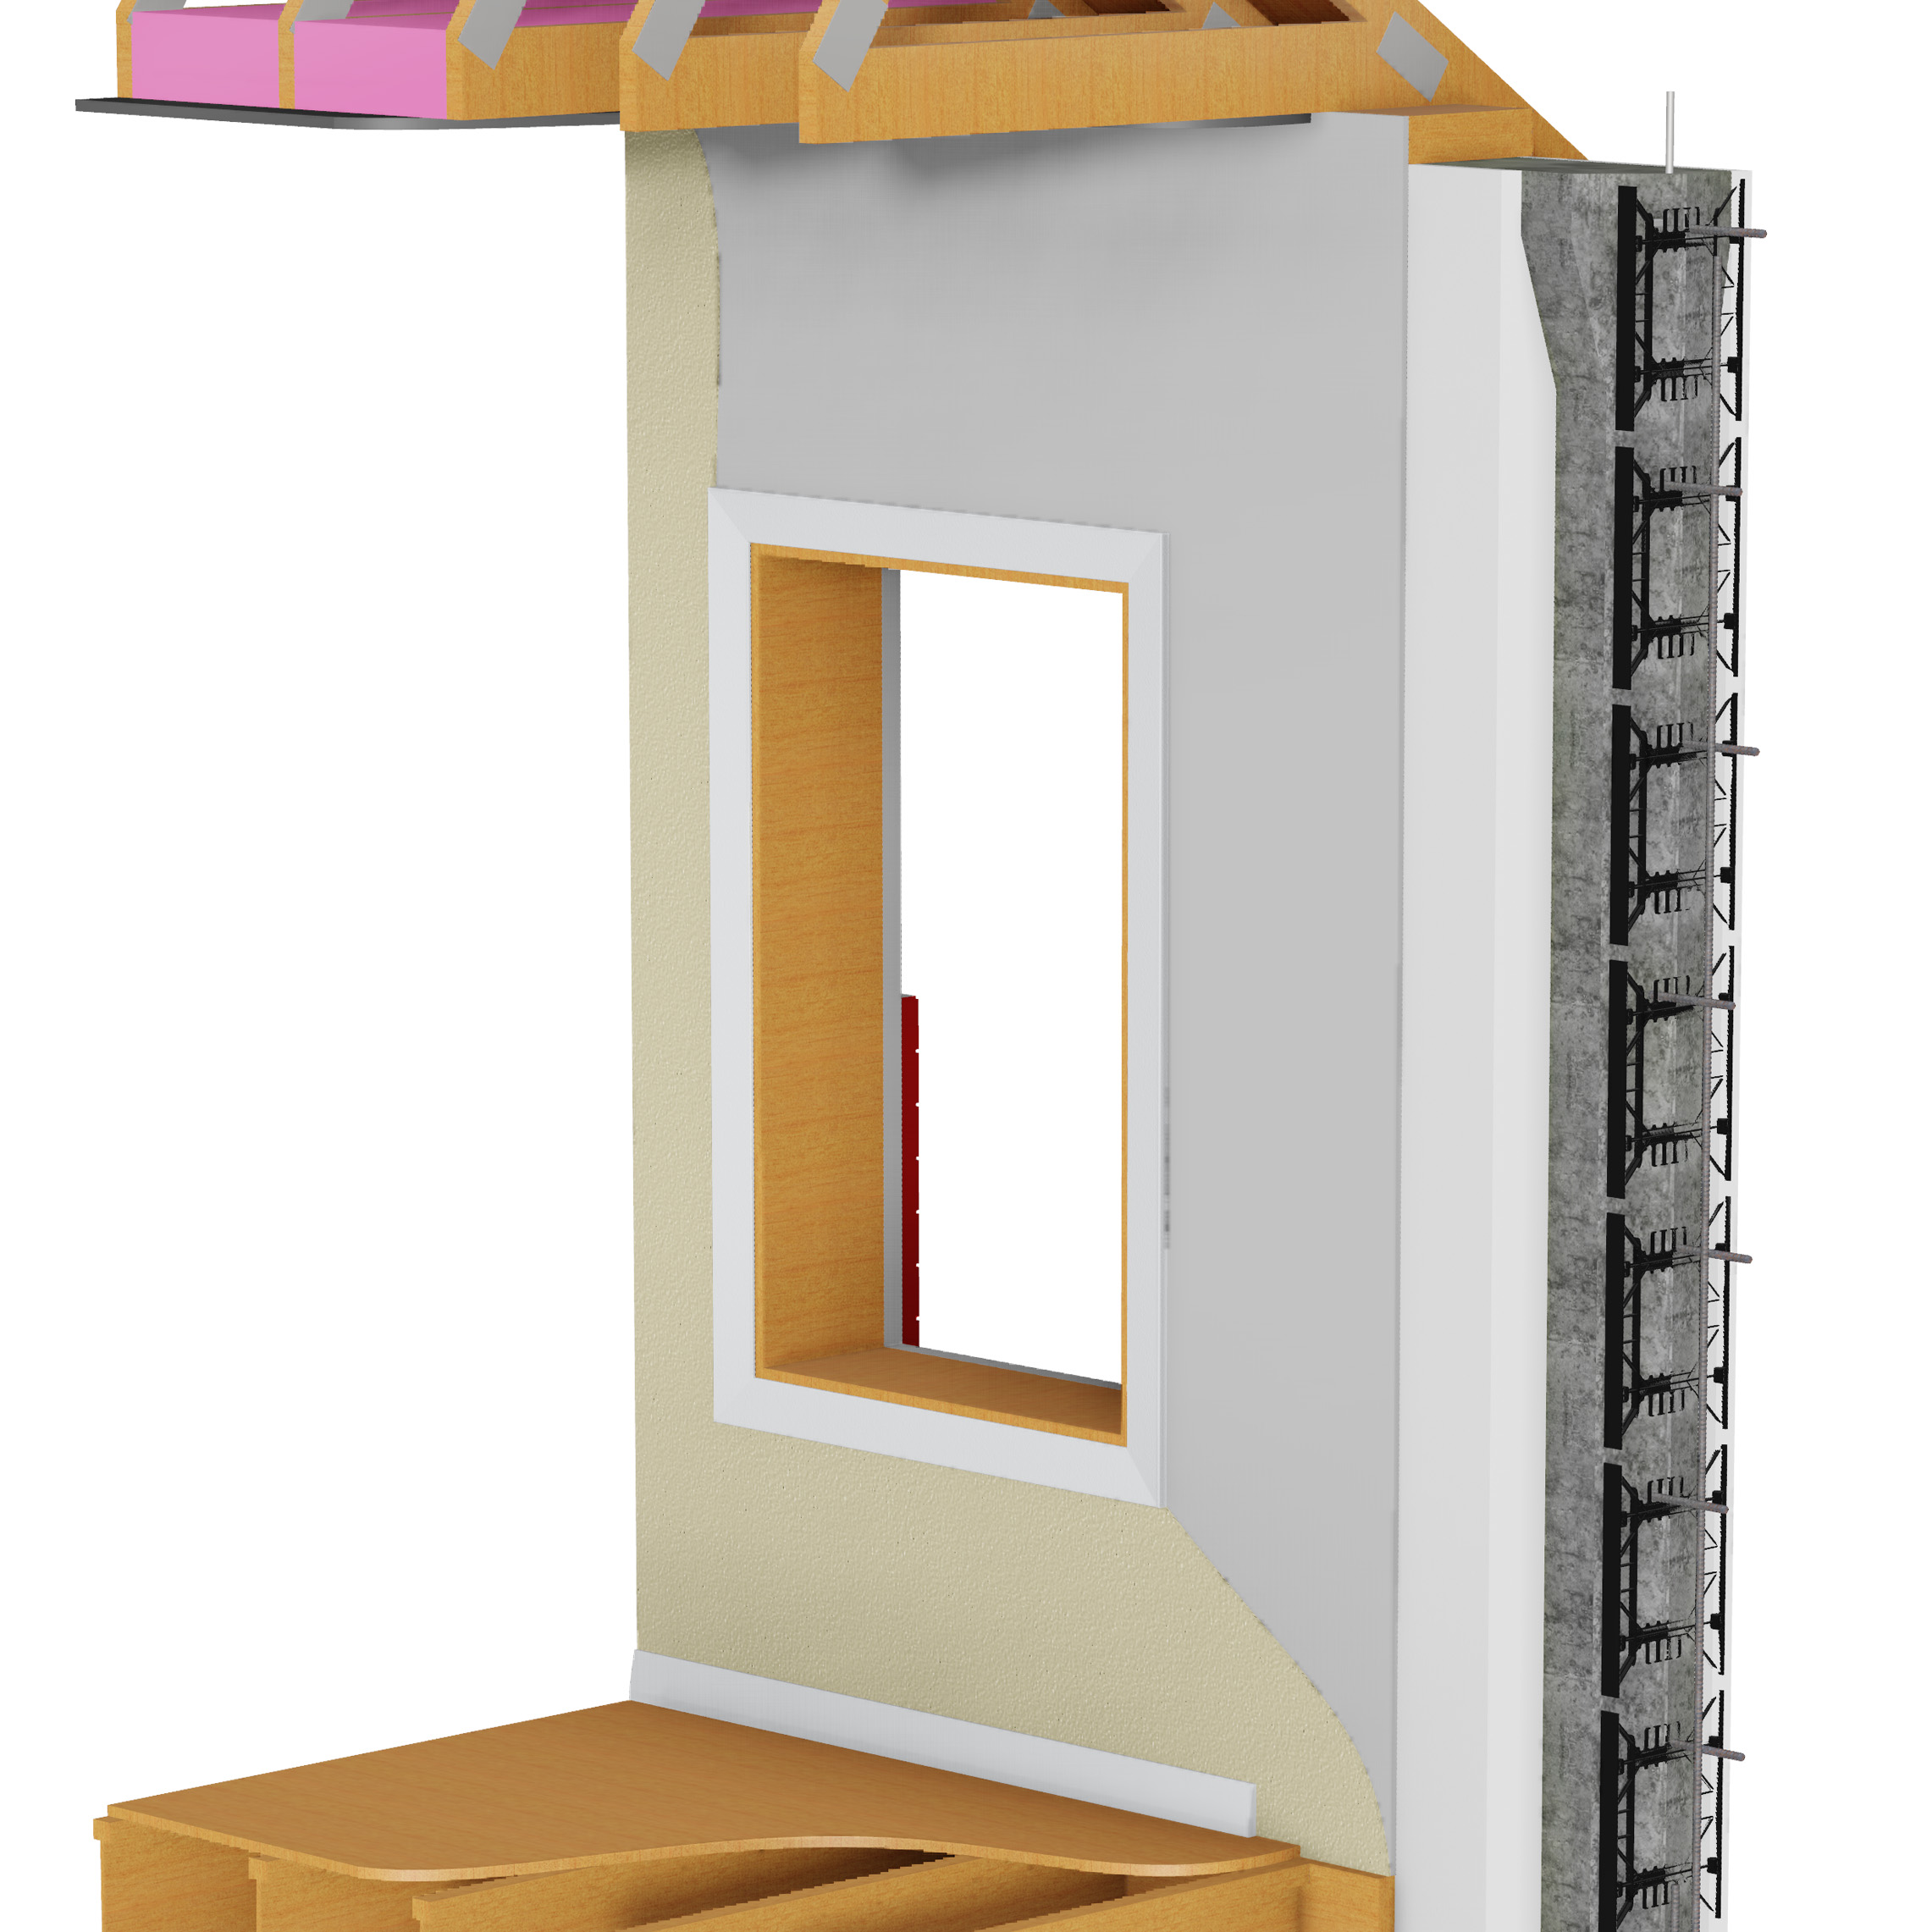 BuildBlock: Options and Best Practices for ICF Door & Window Openings